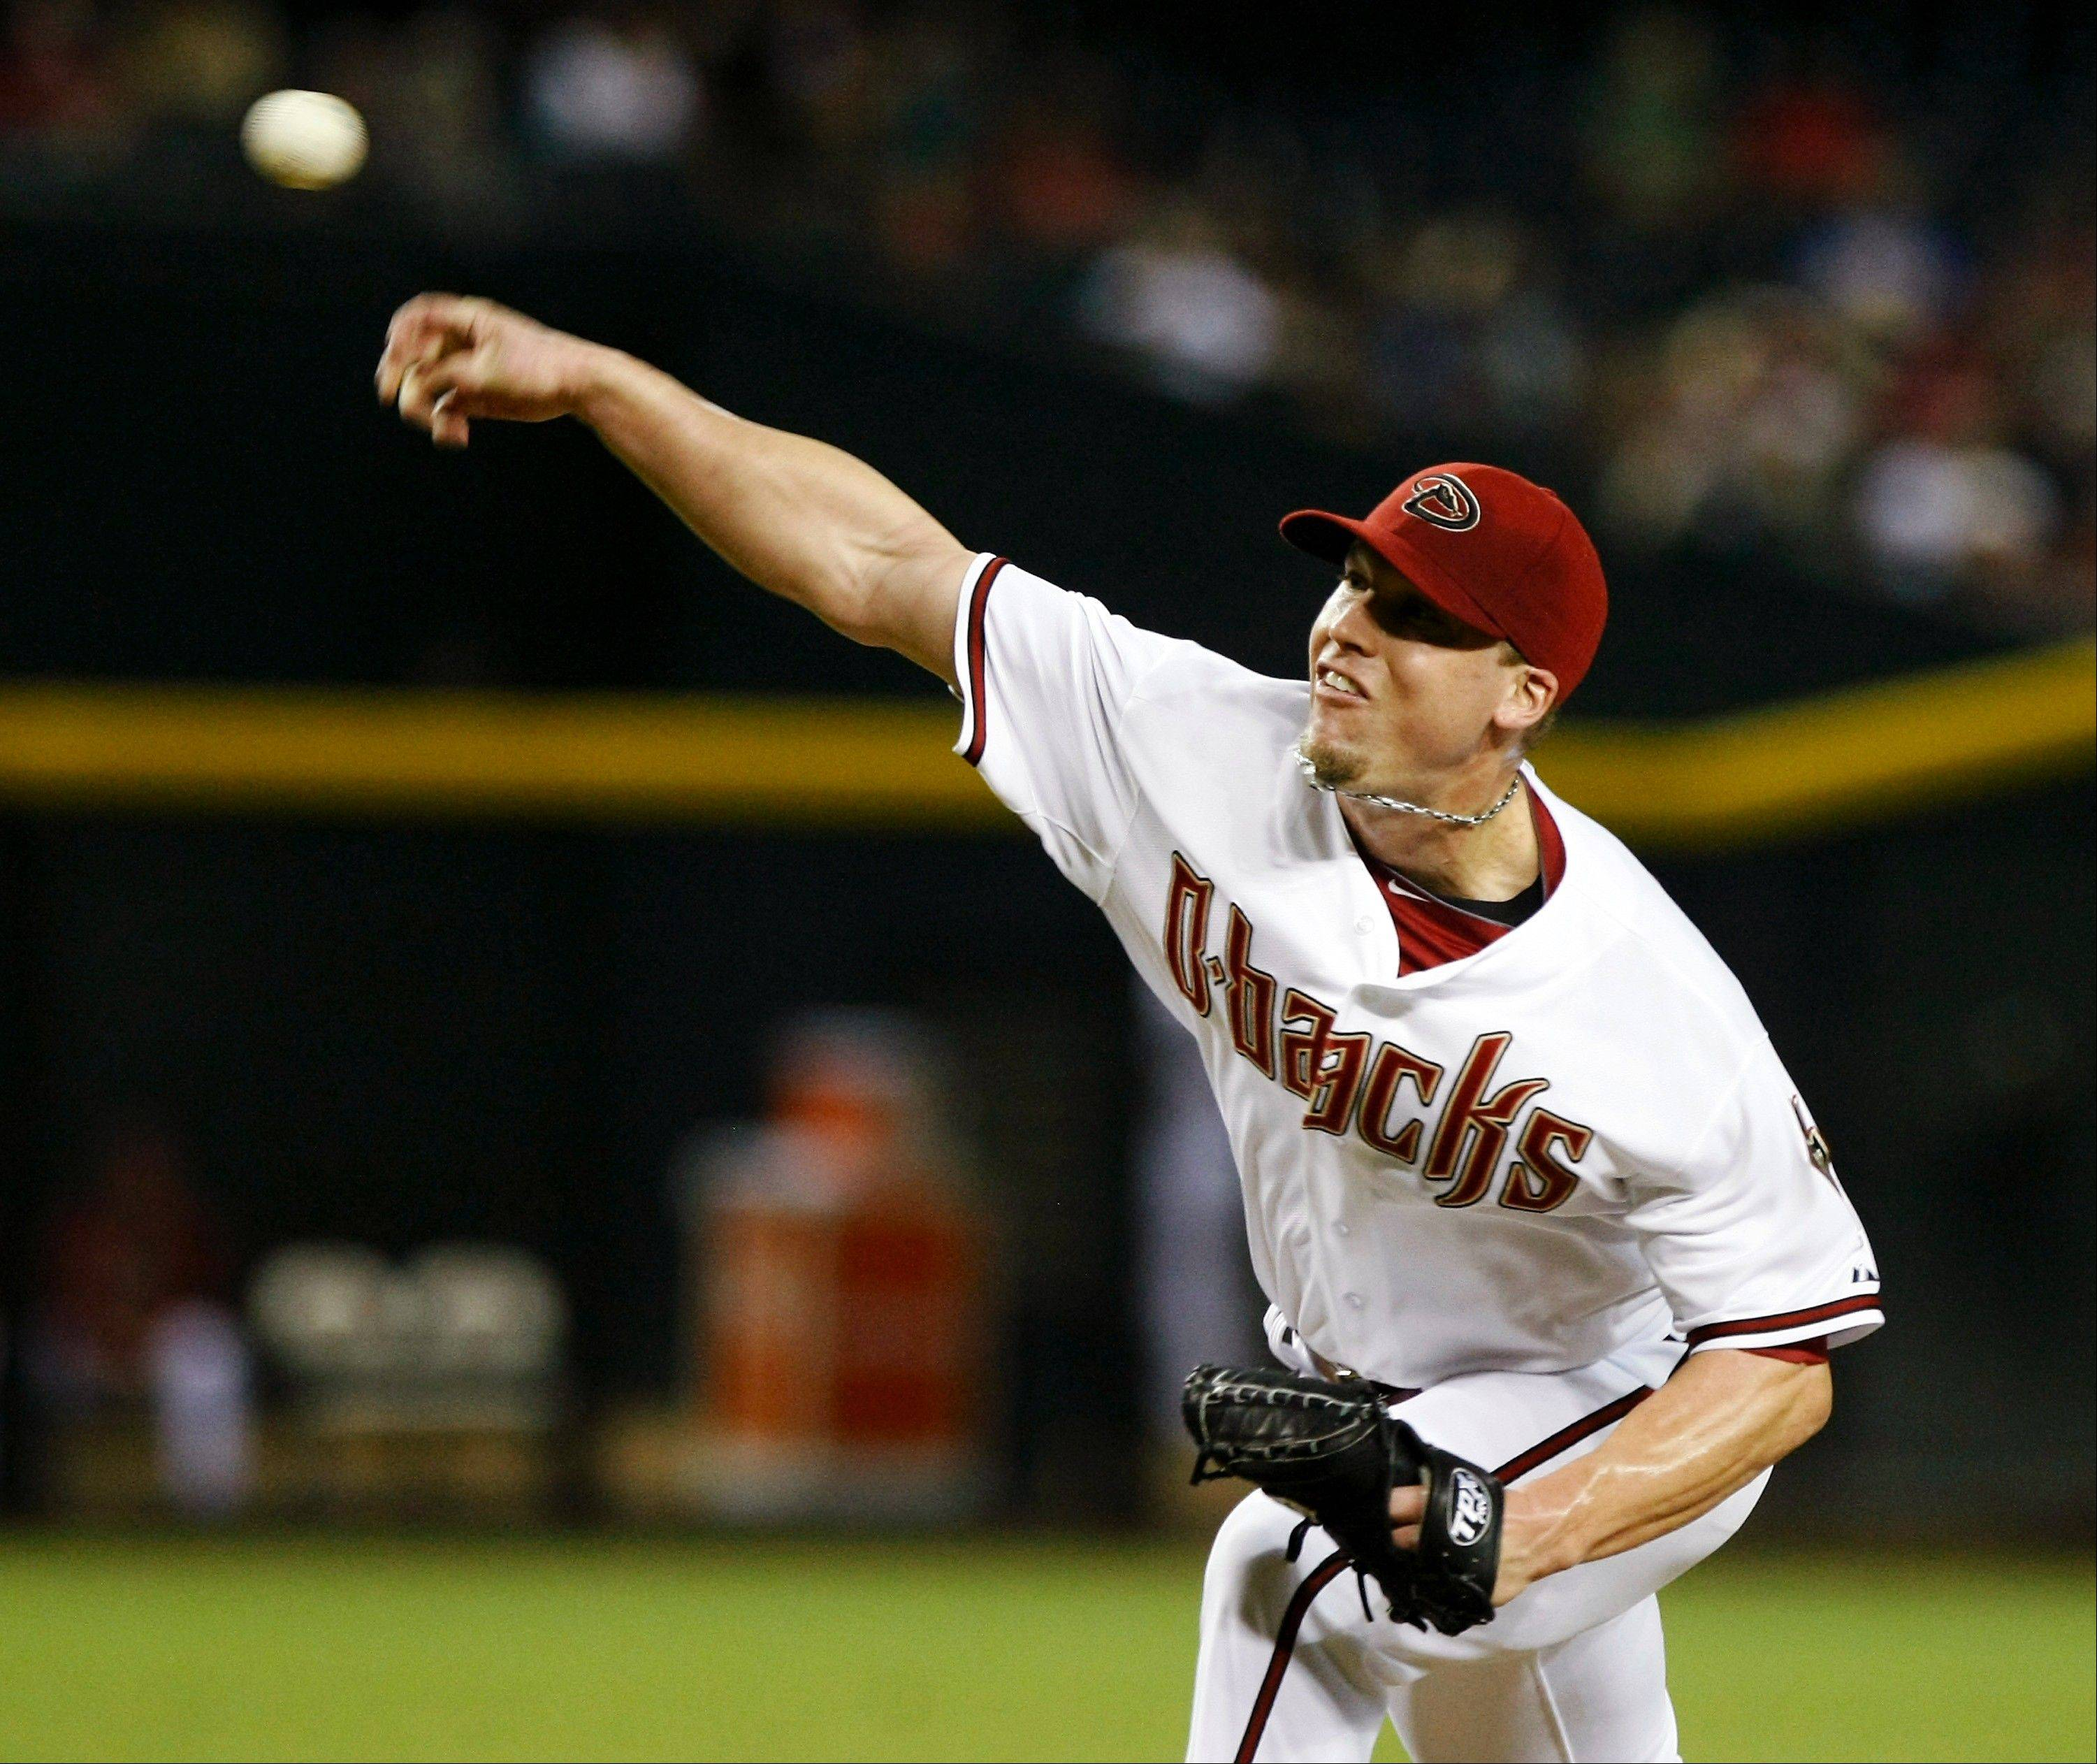 Former Arizona Diamondbacks pitcher Matt Lindstrom has agreed to a one-year deal with the White Sox.